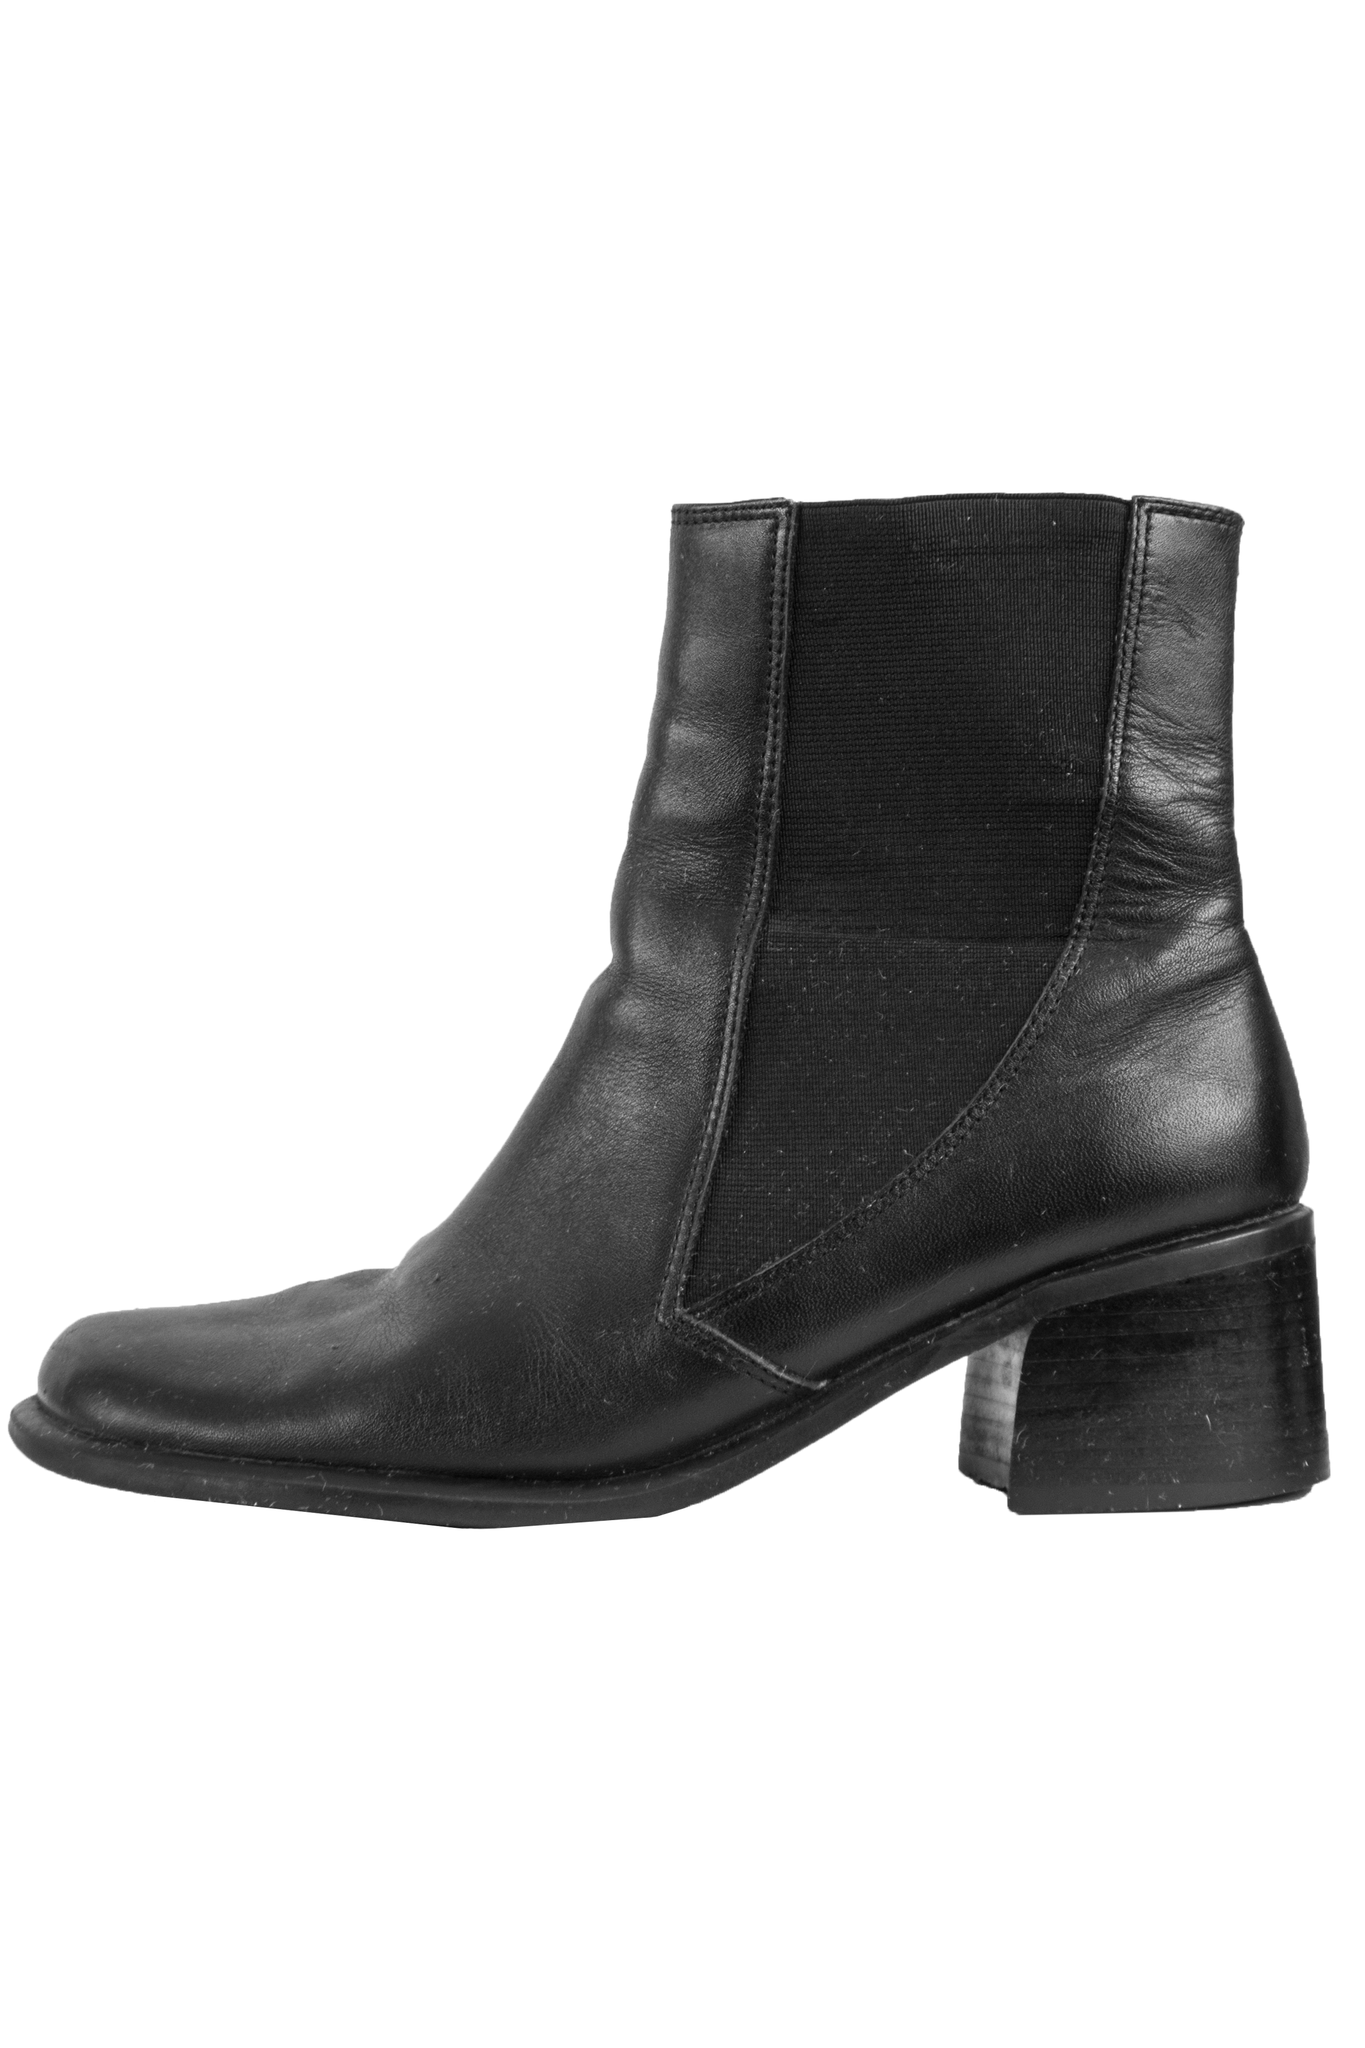 vintage leather ankle boots in black with heel stacked